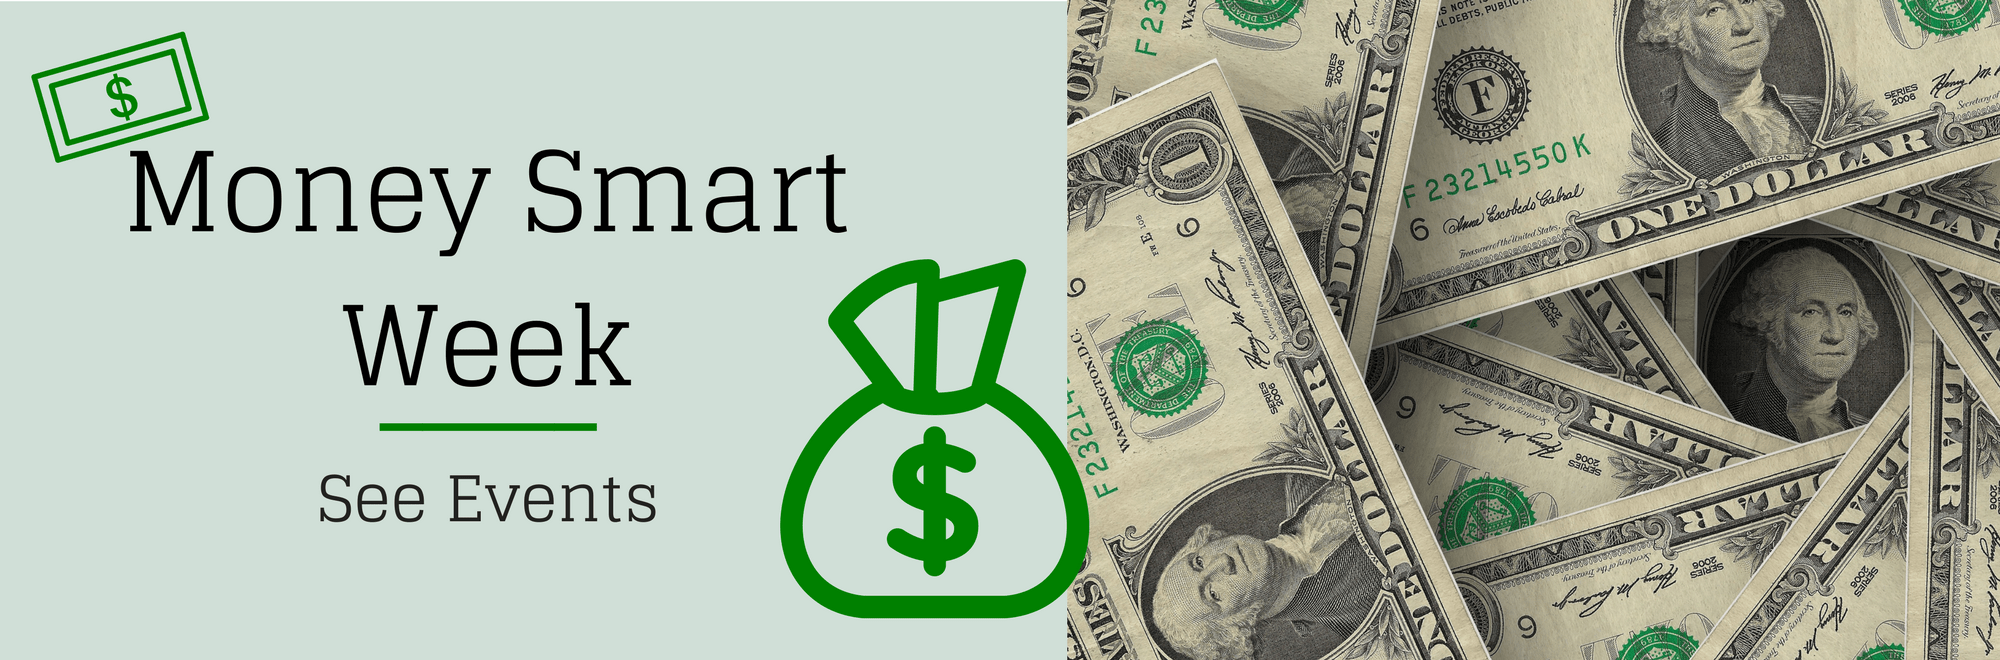 Money Smart Week - See Events